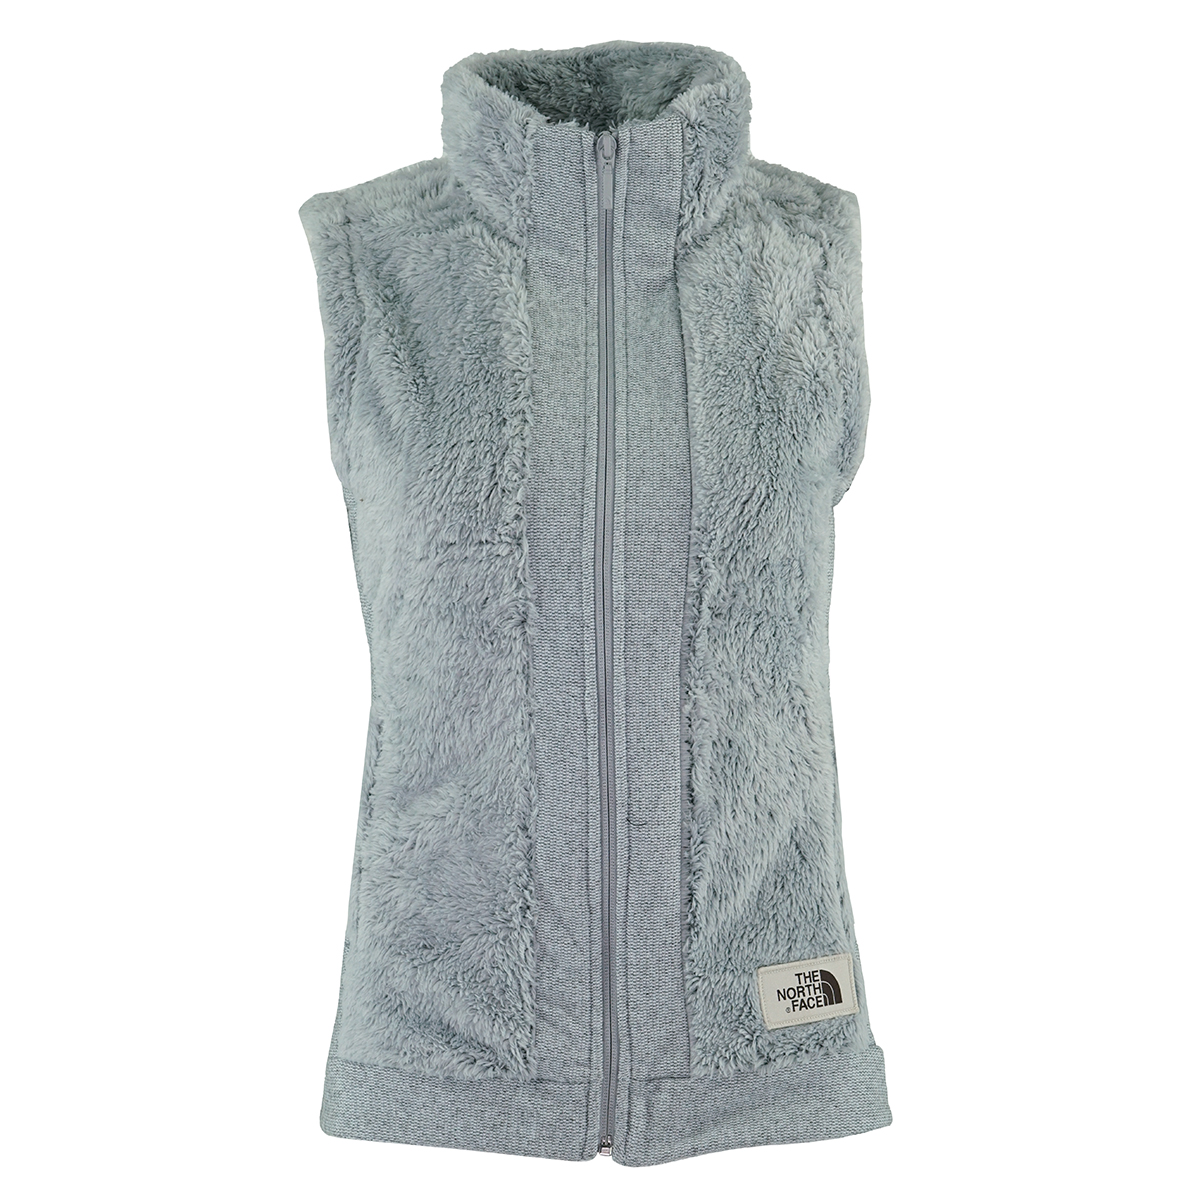 The North Face Women S Furry Fleece Vest Ebay